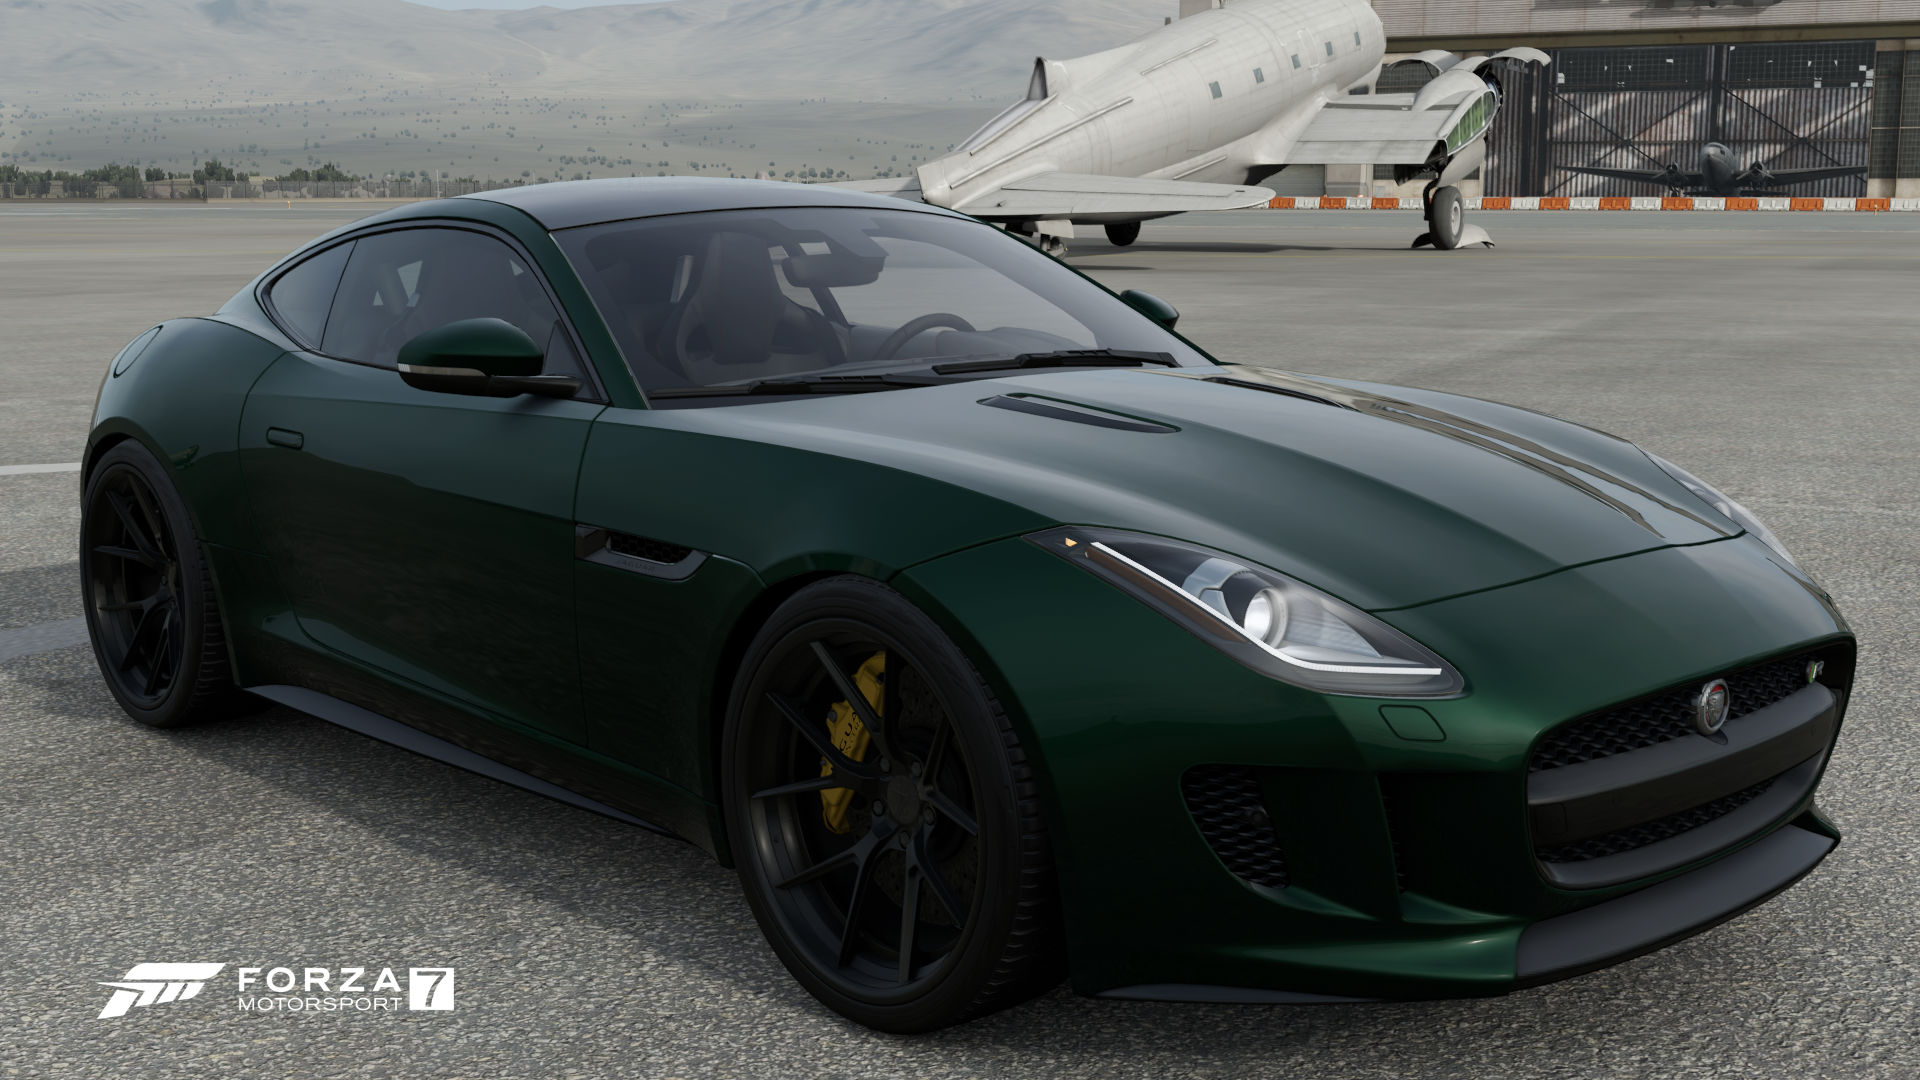 powered cb wiki forza jaguar f by fandom type motorsport latest coupe wikia r coup